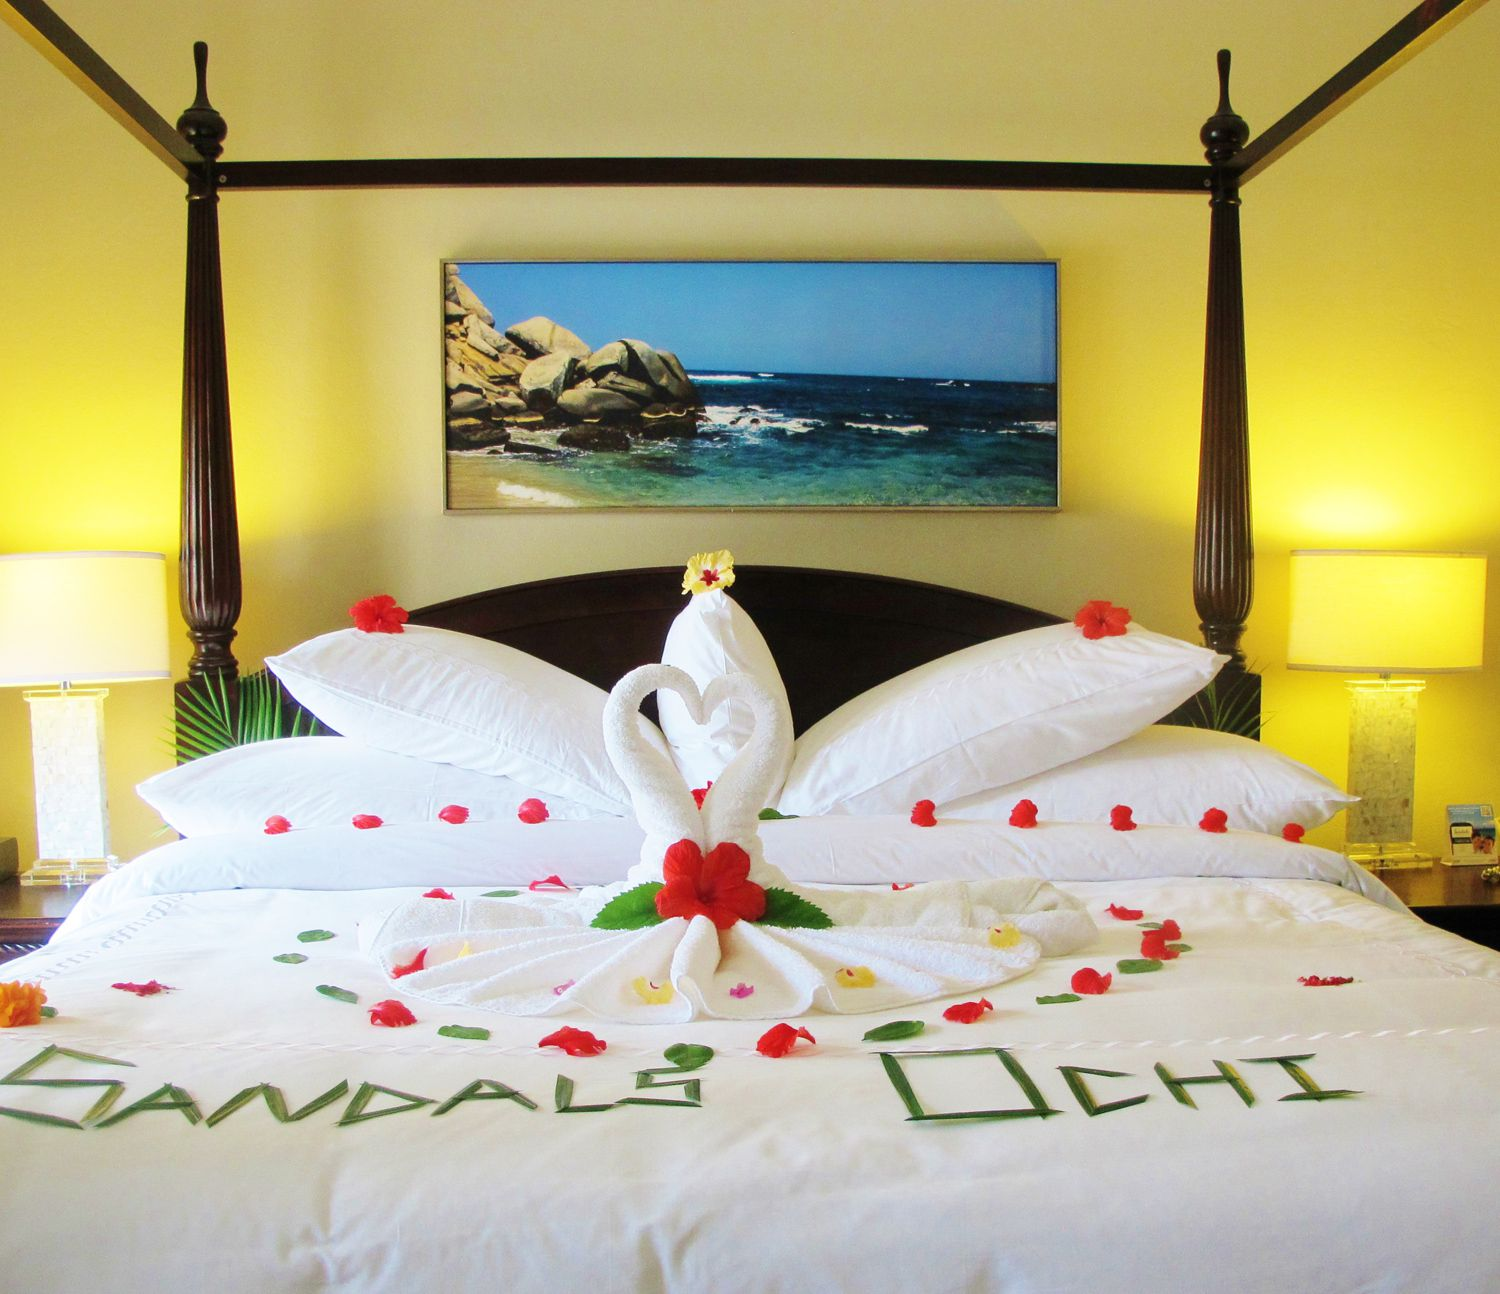 Panama Vacations All Inclusive Packages: All-Inclusive Pros And Cons At Honeymoon Resorts